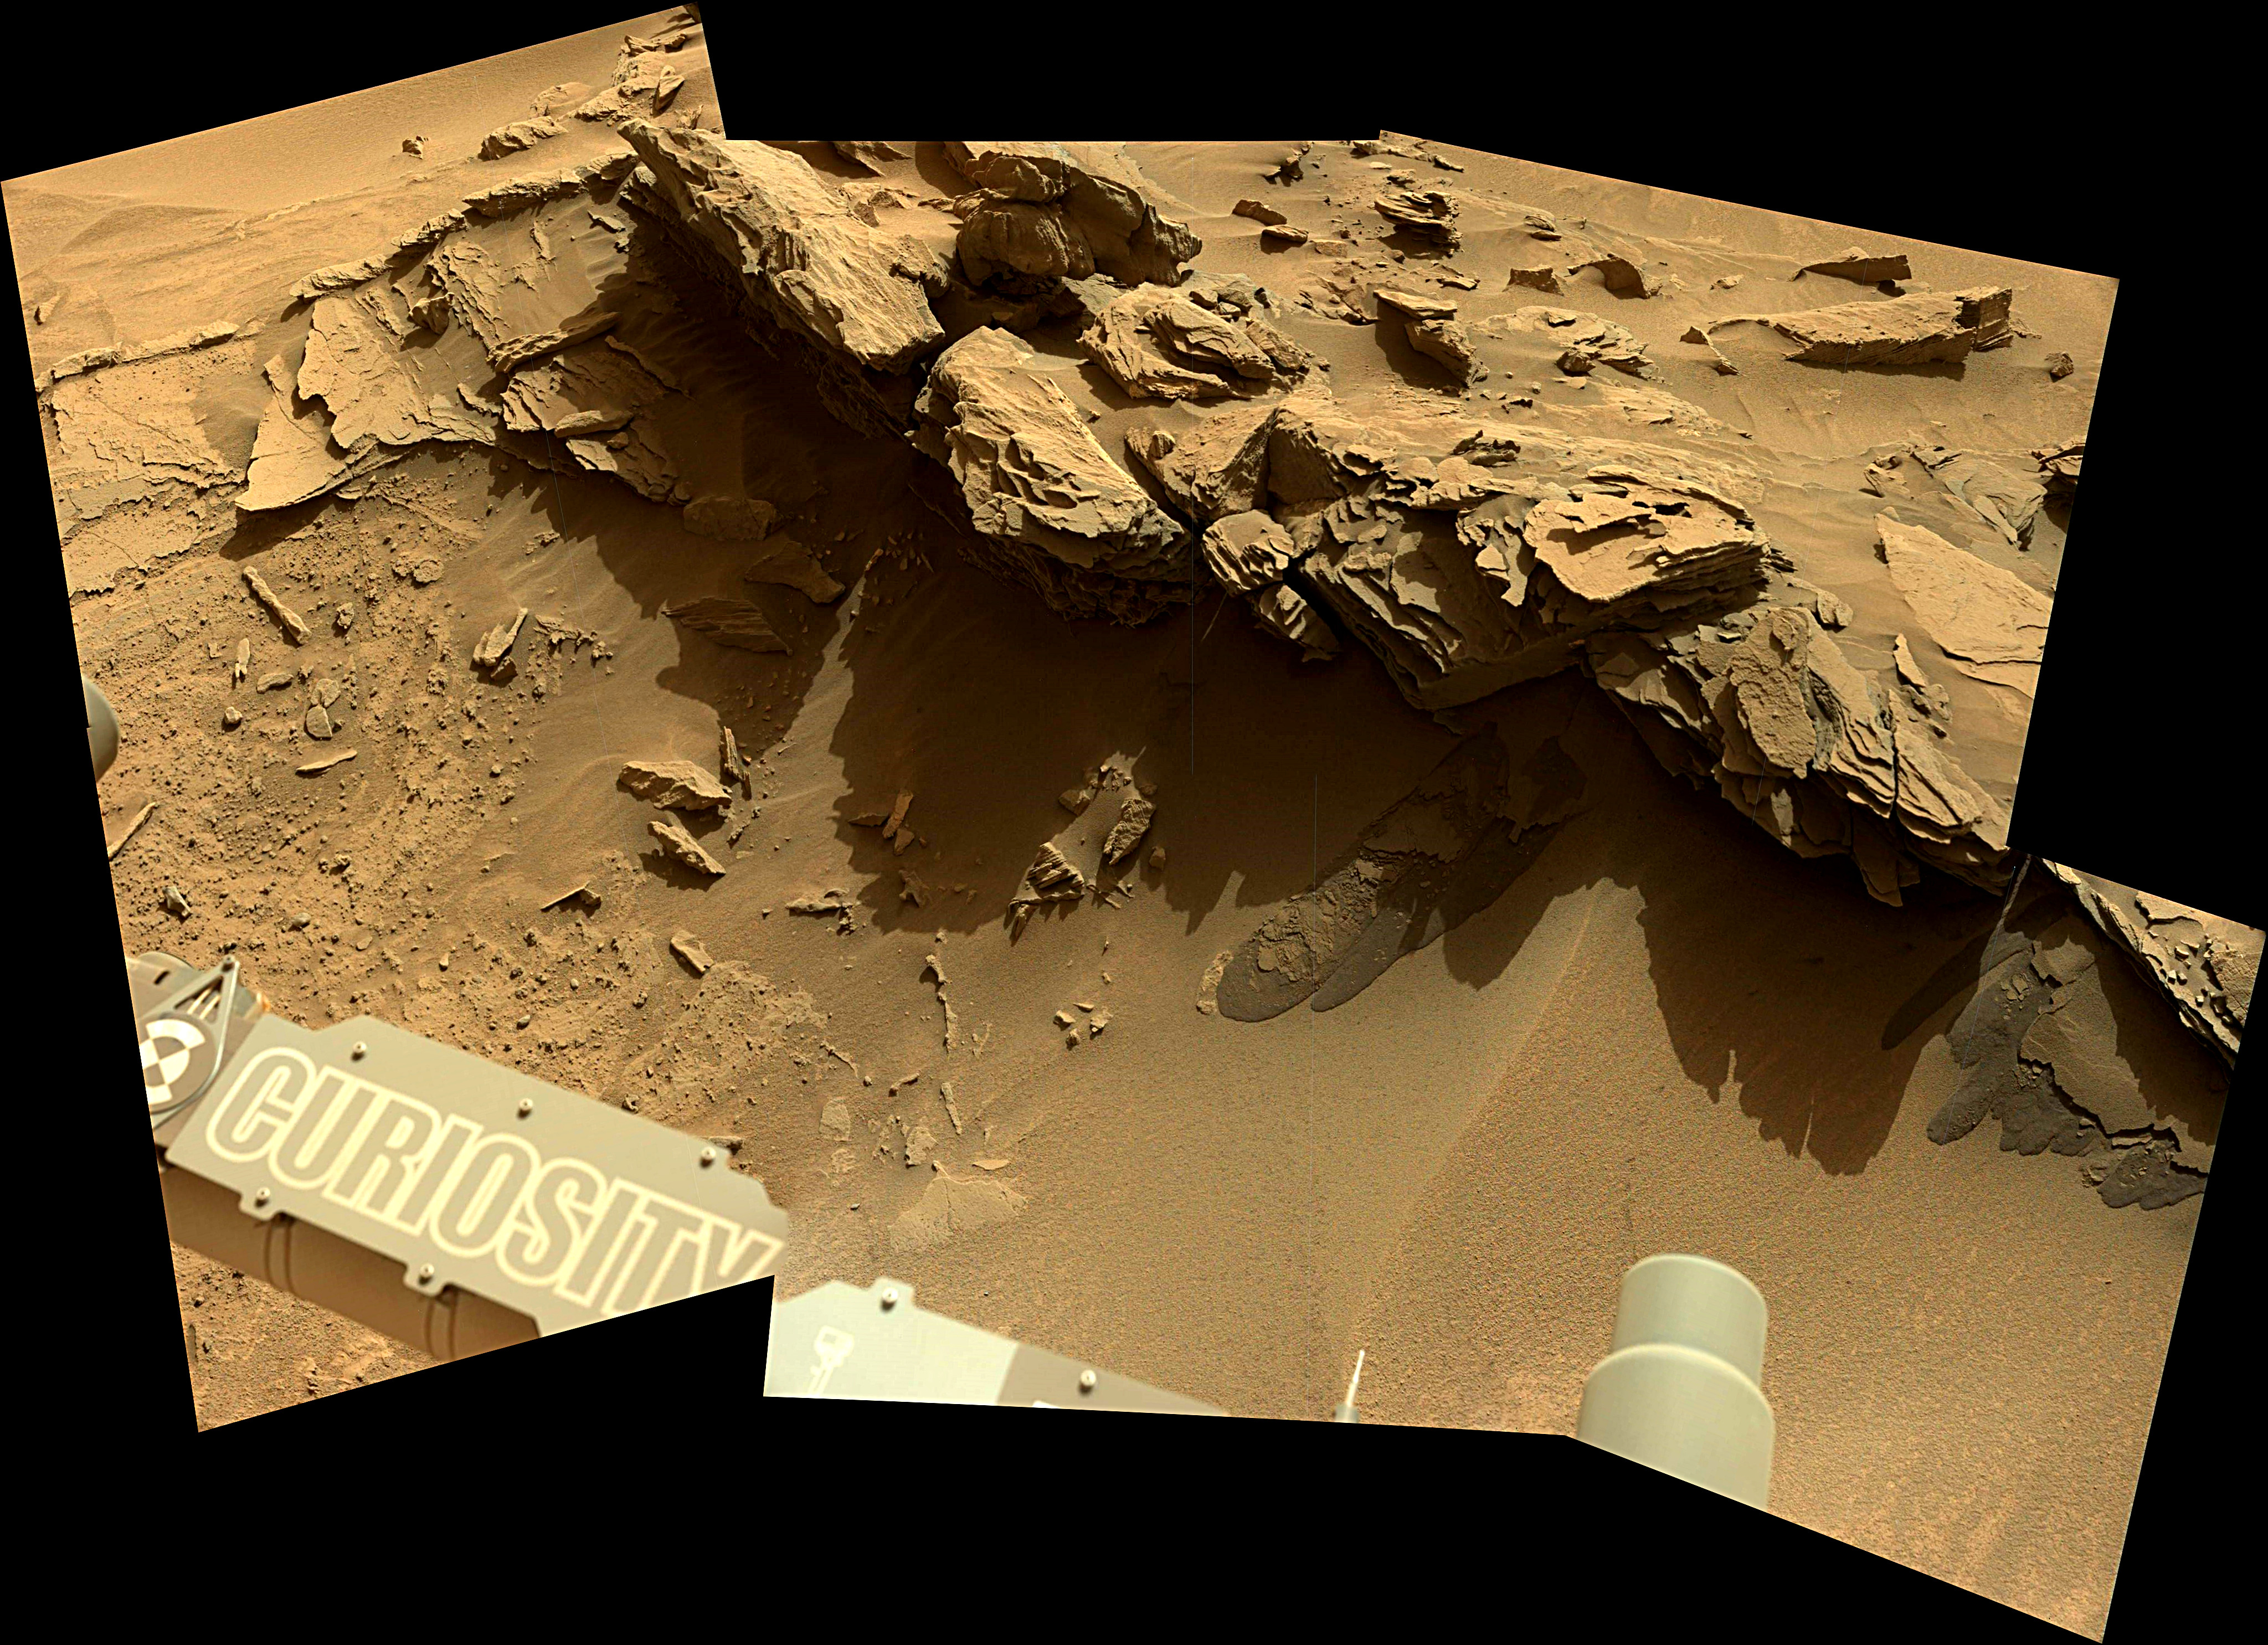 Curiosity Rover Panoramic View 2 of Mars Sol 1349 – Click to enlarge